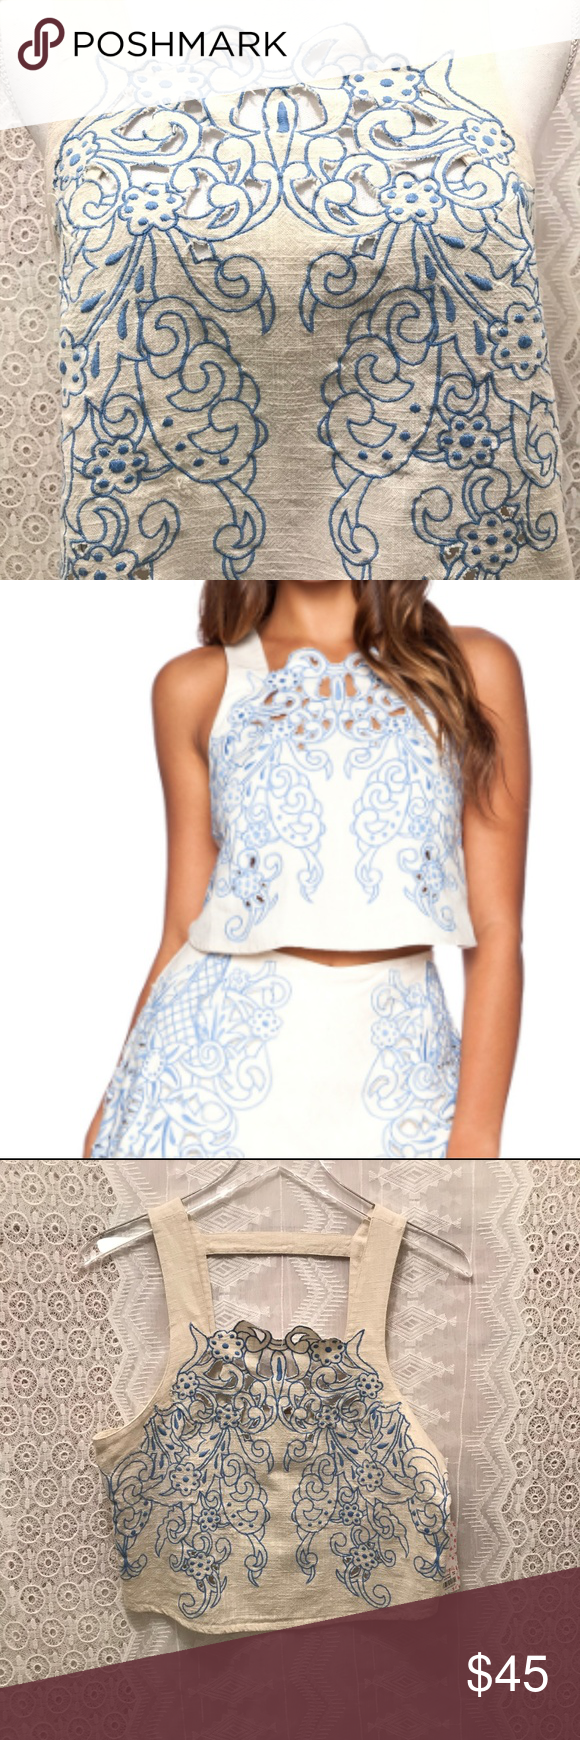 53fa006886c1e Free People Topaz Moon Lyst Embroidered Crop Top Lyst Blue. Set retails for  $228.